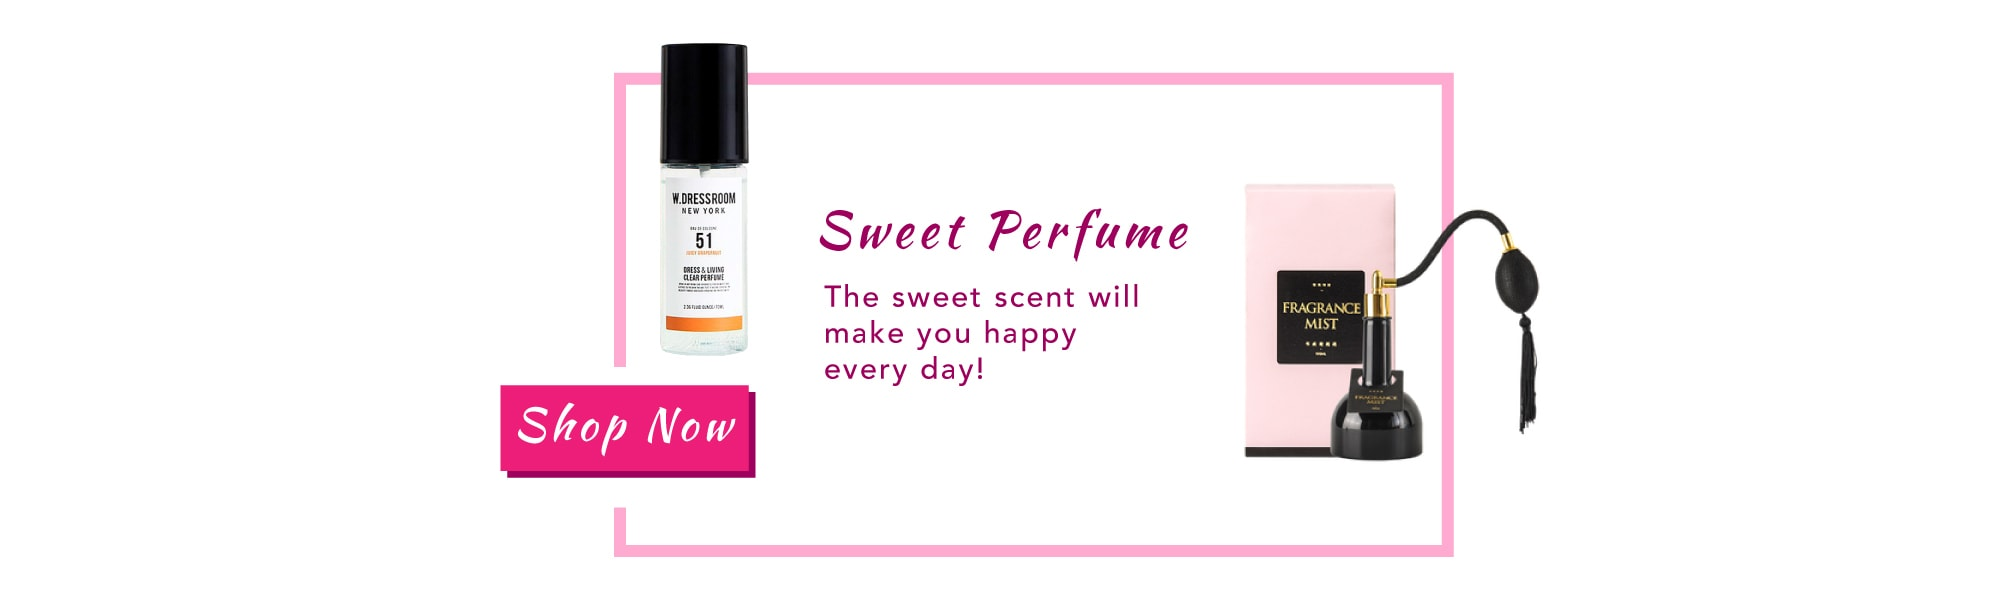 The Perfect Scent-Sation Story